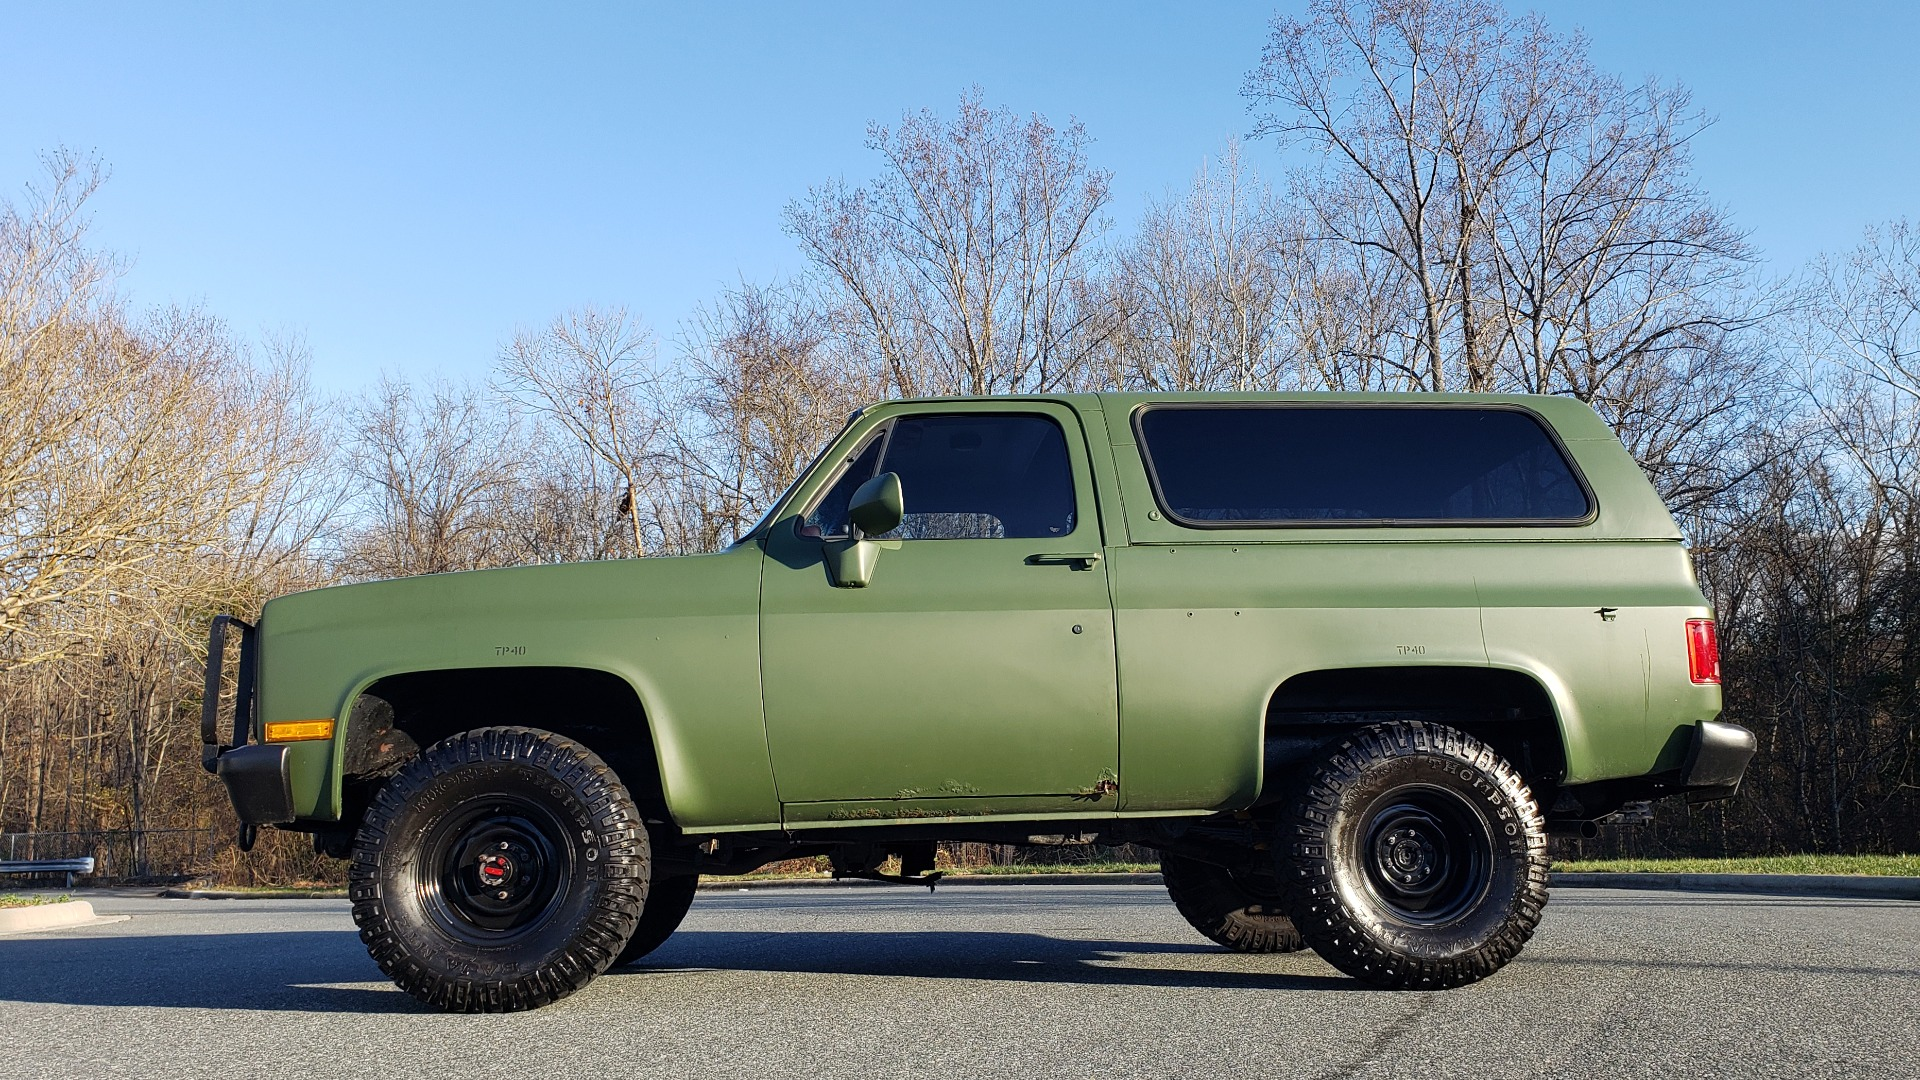 Used 1985 Chevrolet BLAZER D10 MILITARY SUV / 4X4 / 6.2L DIESEL V8 / VINTAGE AIR for sale $15,000 at Formula Imports in Charlotte NC 28227 2